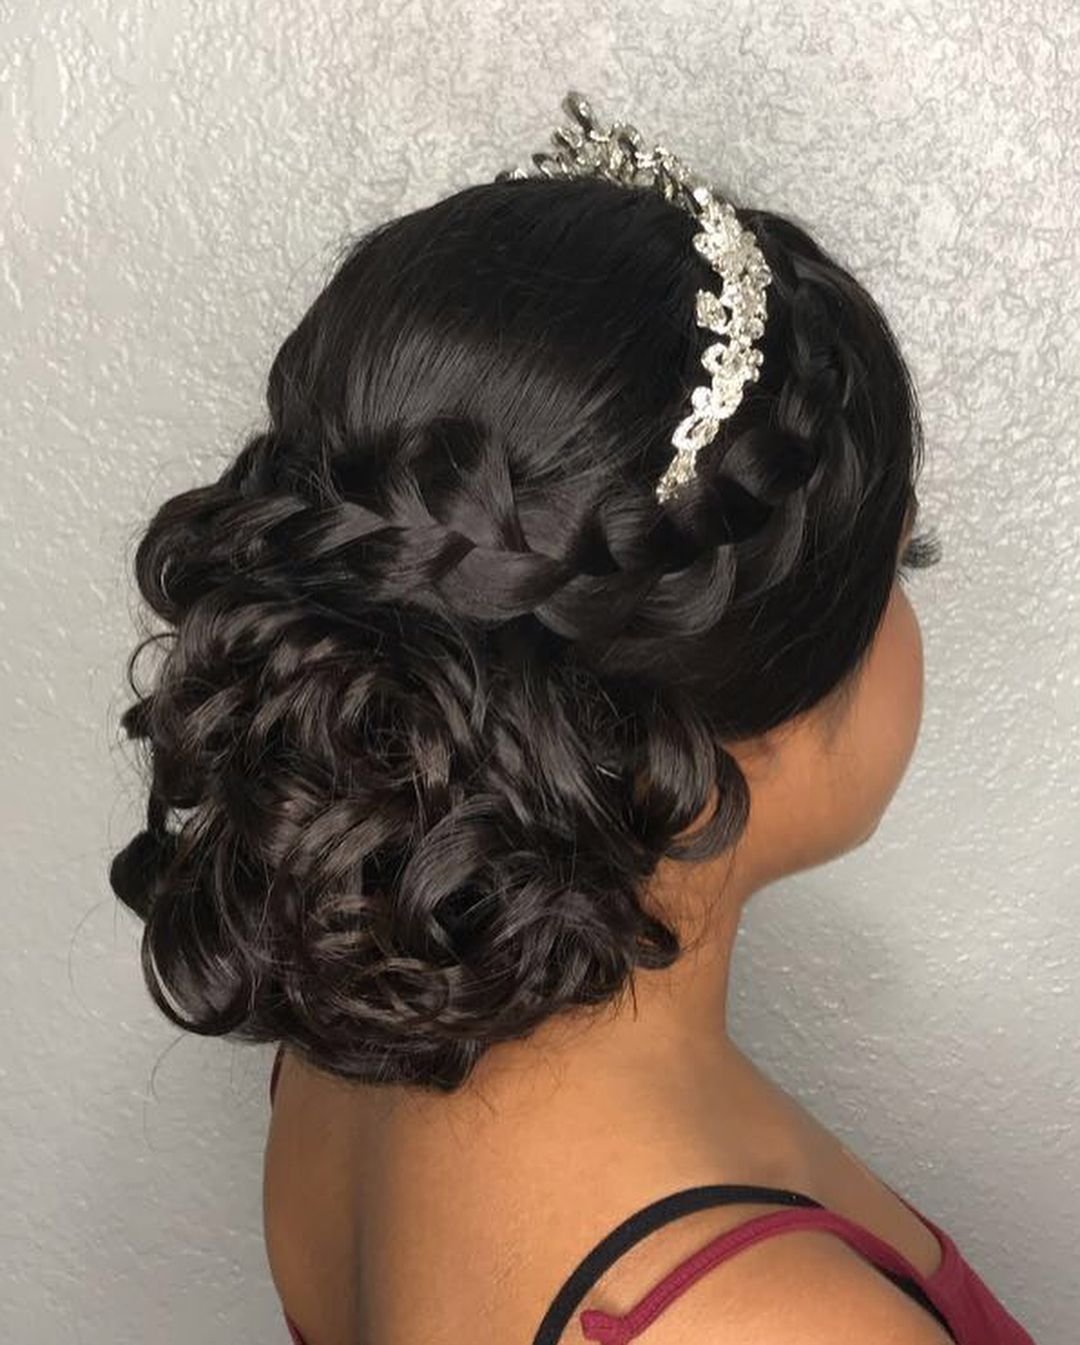 Quince Updo Love Adding A Braid To Any Hairstyle Quince Quinceanera Updo Elegant Glam Quince Hairstyles Sweet 15 Hairstyles Curly Hair Styles Naturally